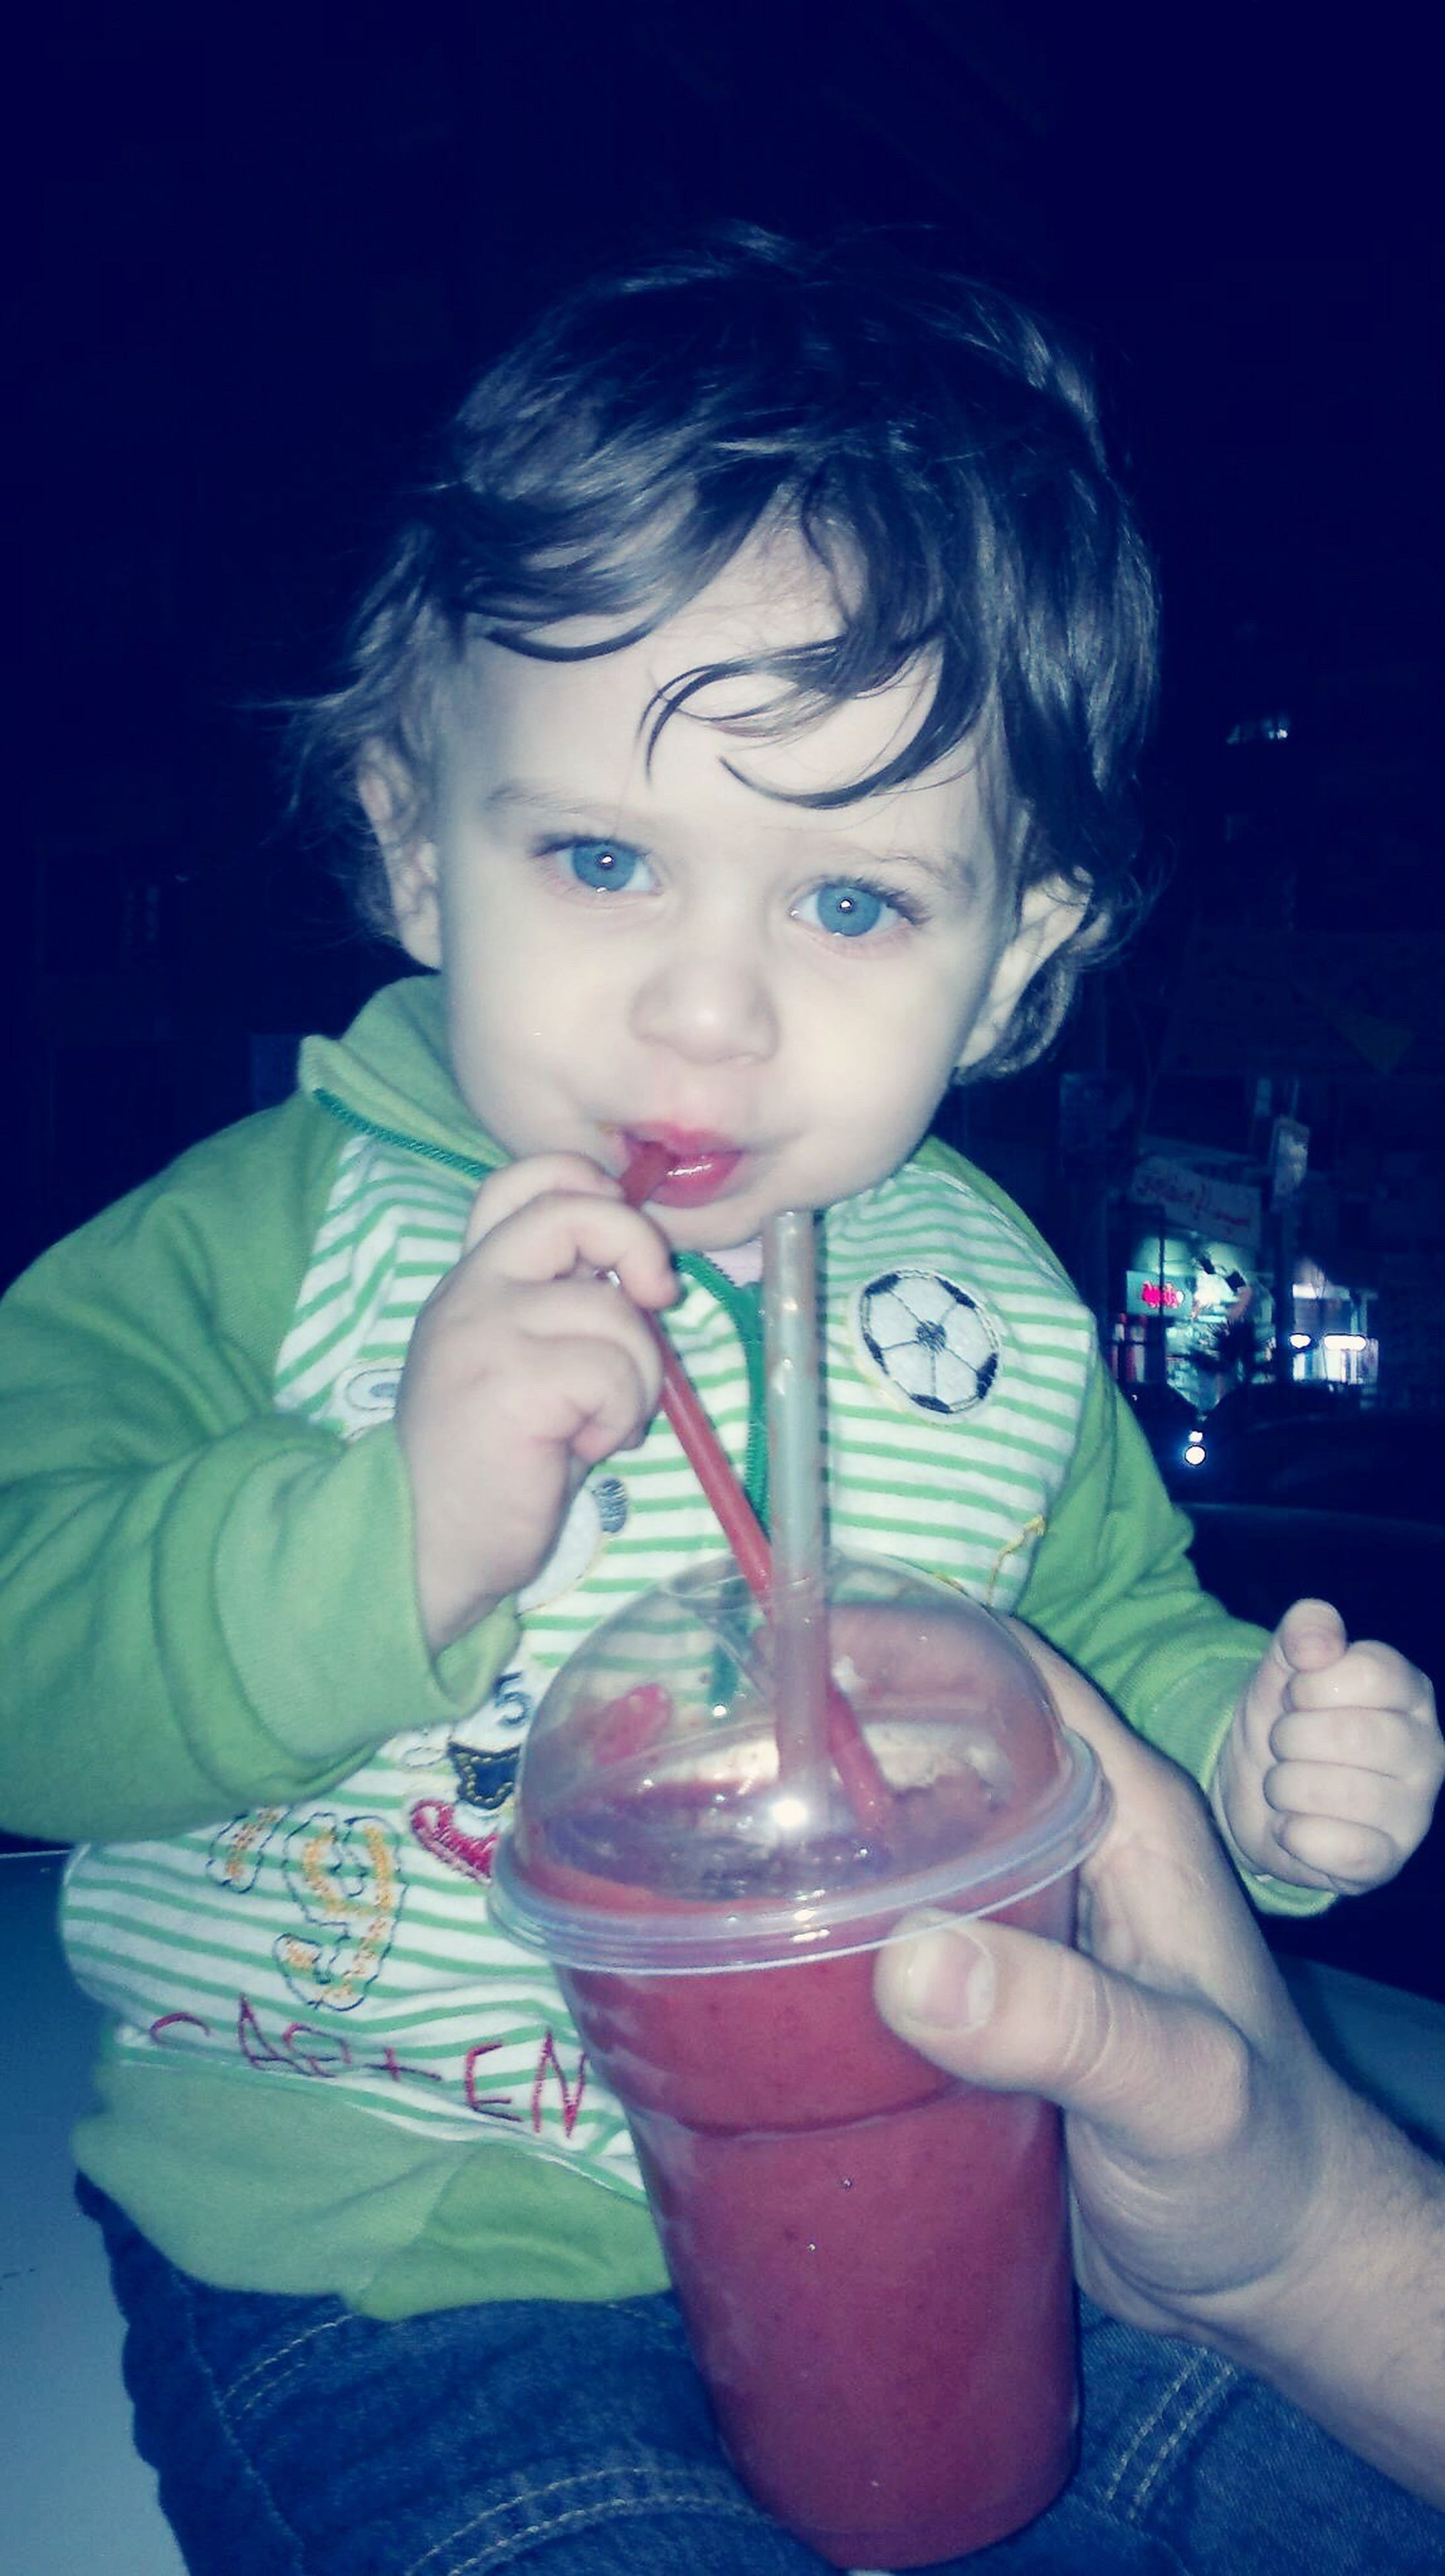 drinking straw, real people, one person, childhood, food and drink, holding, innocence, drinking, drinking glass, drink, indoors, lifestyles, sweet food, close-up, freshness, day, human hand, people